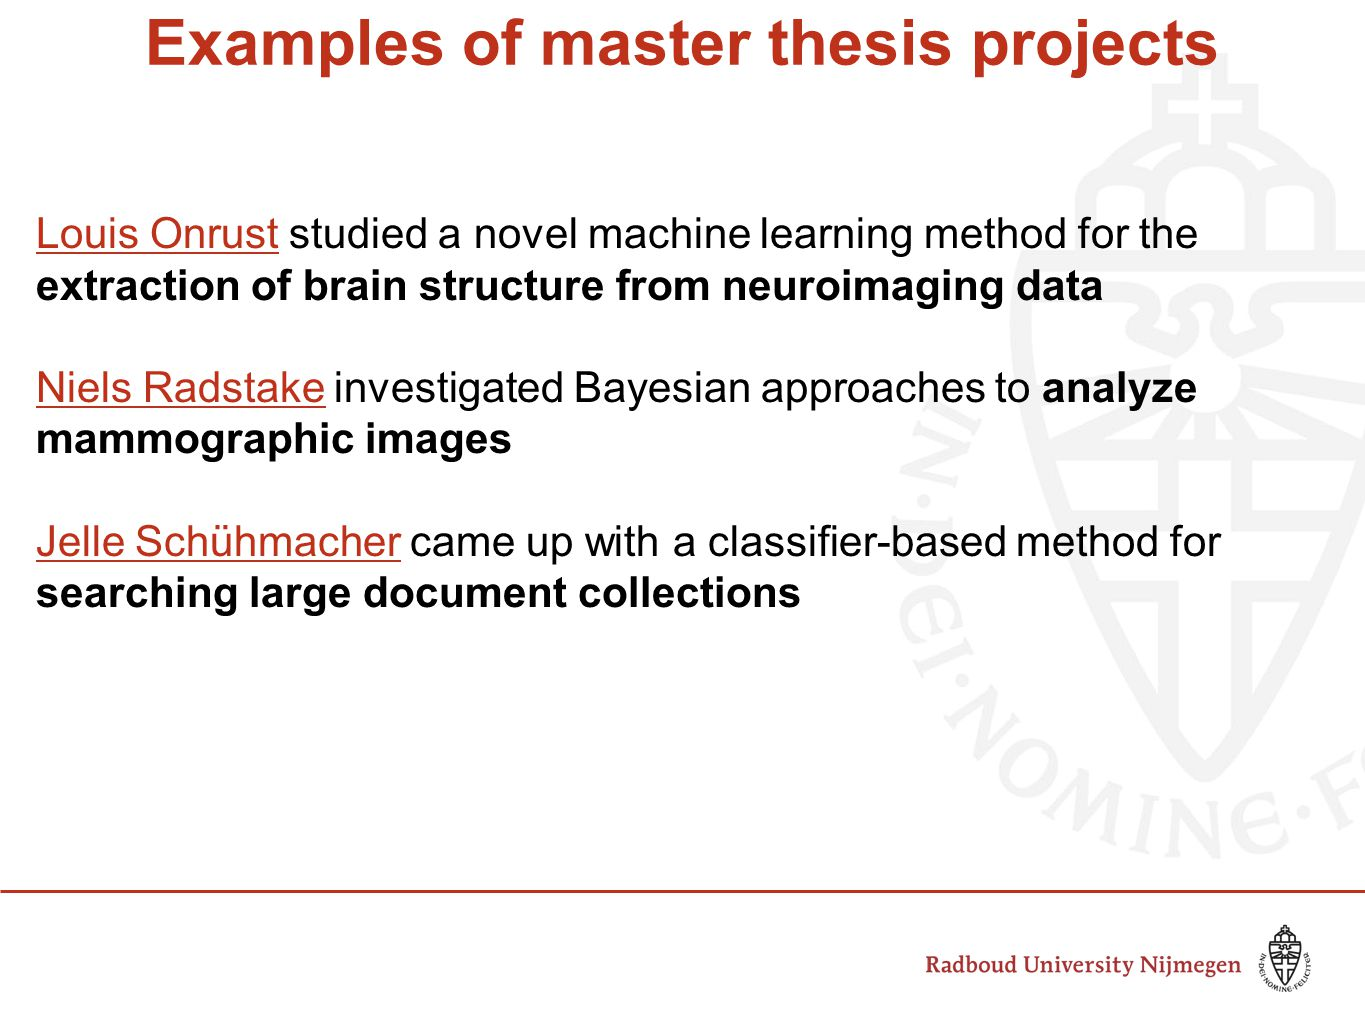 Examples of master thesis projects Louis OnrustLouis Onrust studied a novel machine learning method for the extraction of brain structure from neuroimaging data Niels RadstakeNiels Radstake investigated Bayesian approaches to analyze mammographic images Jelle SchühmacherJelle Schühmacher came up with a classifier-based method for searching large document collections